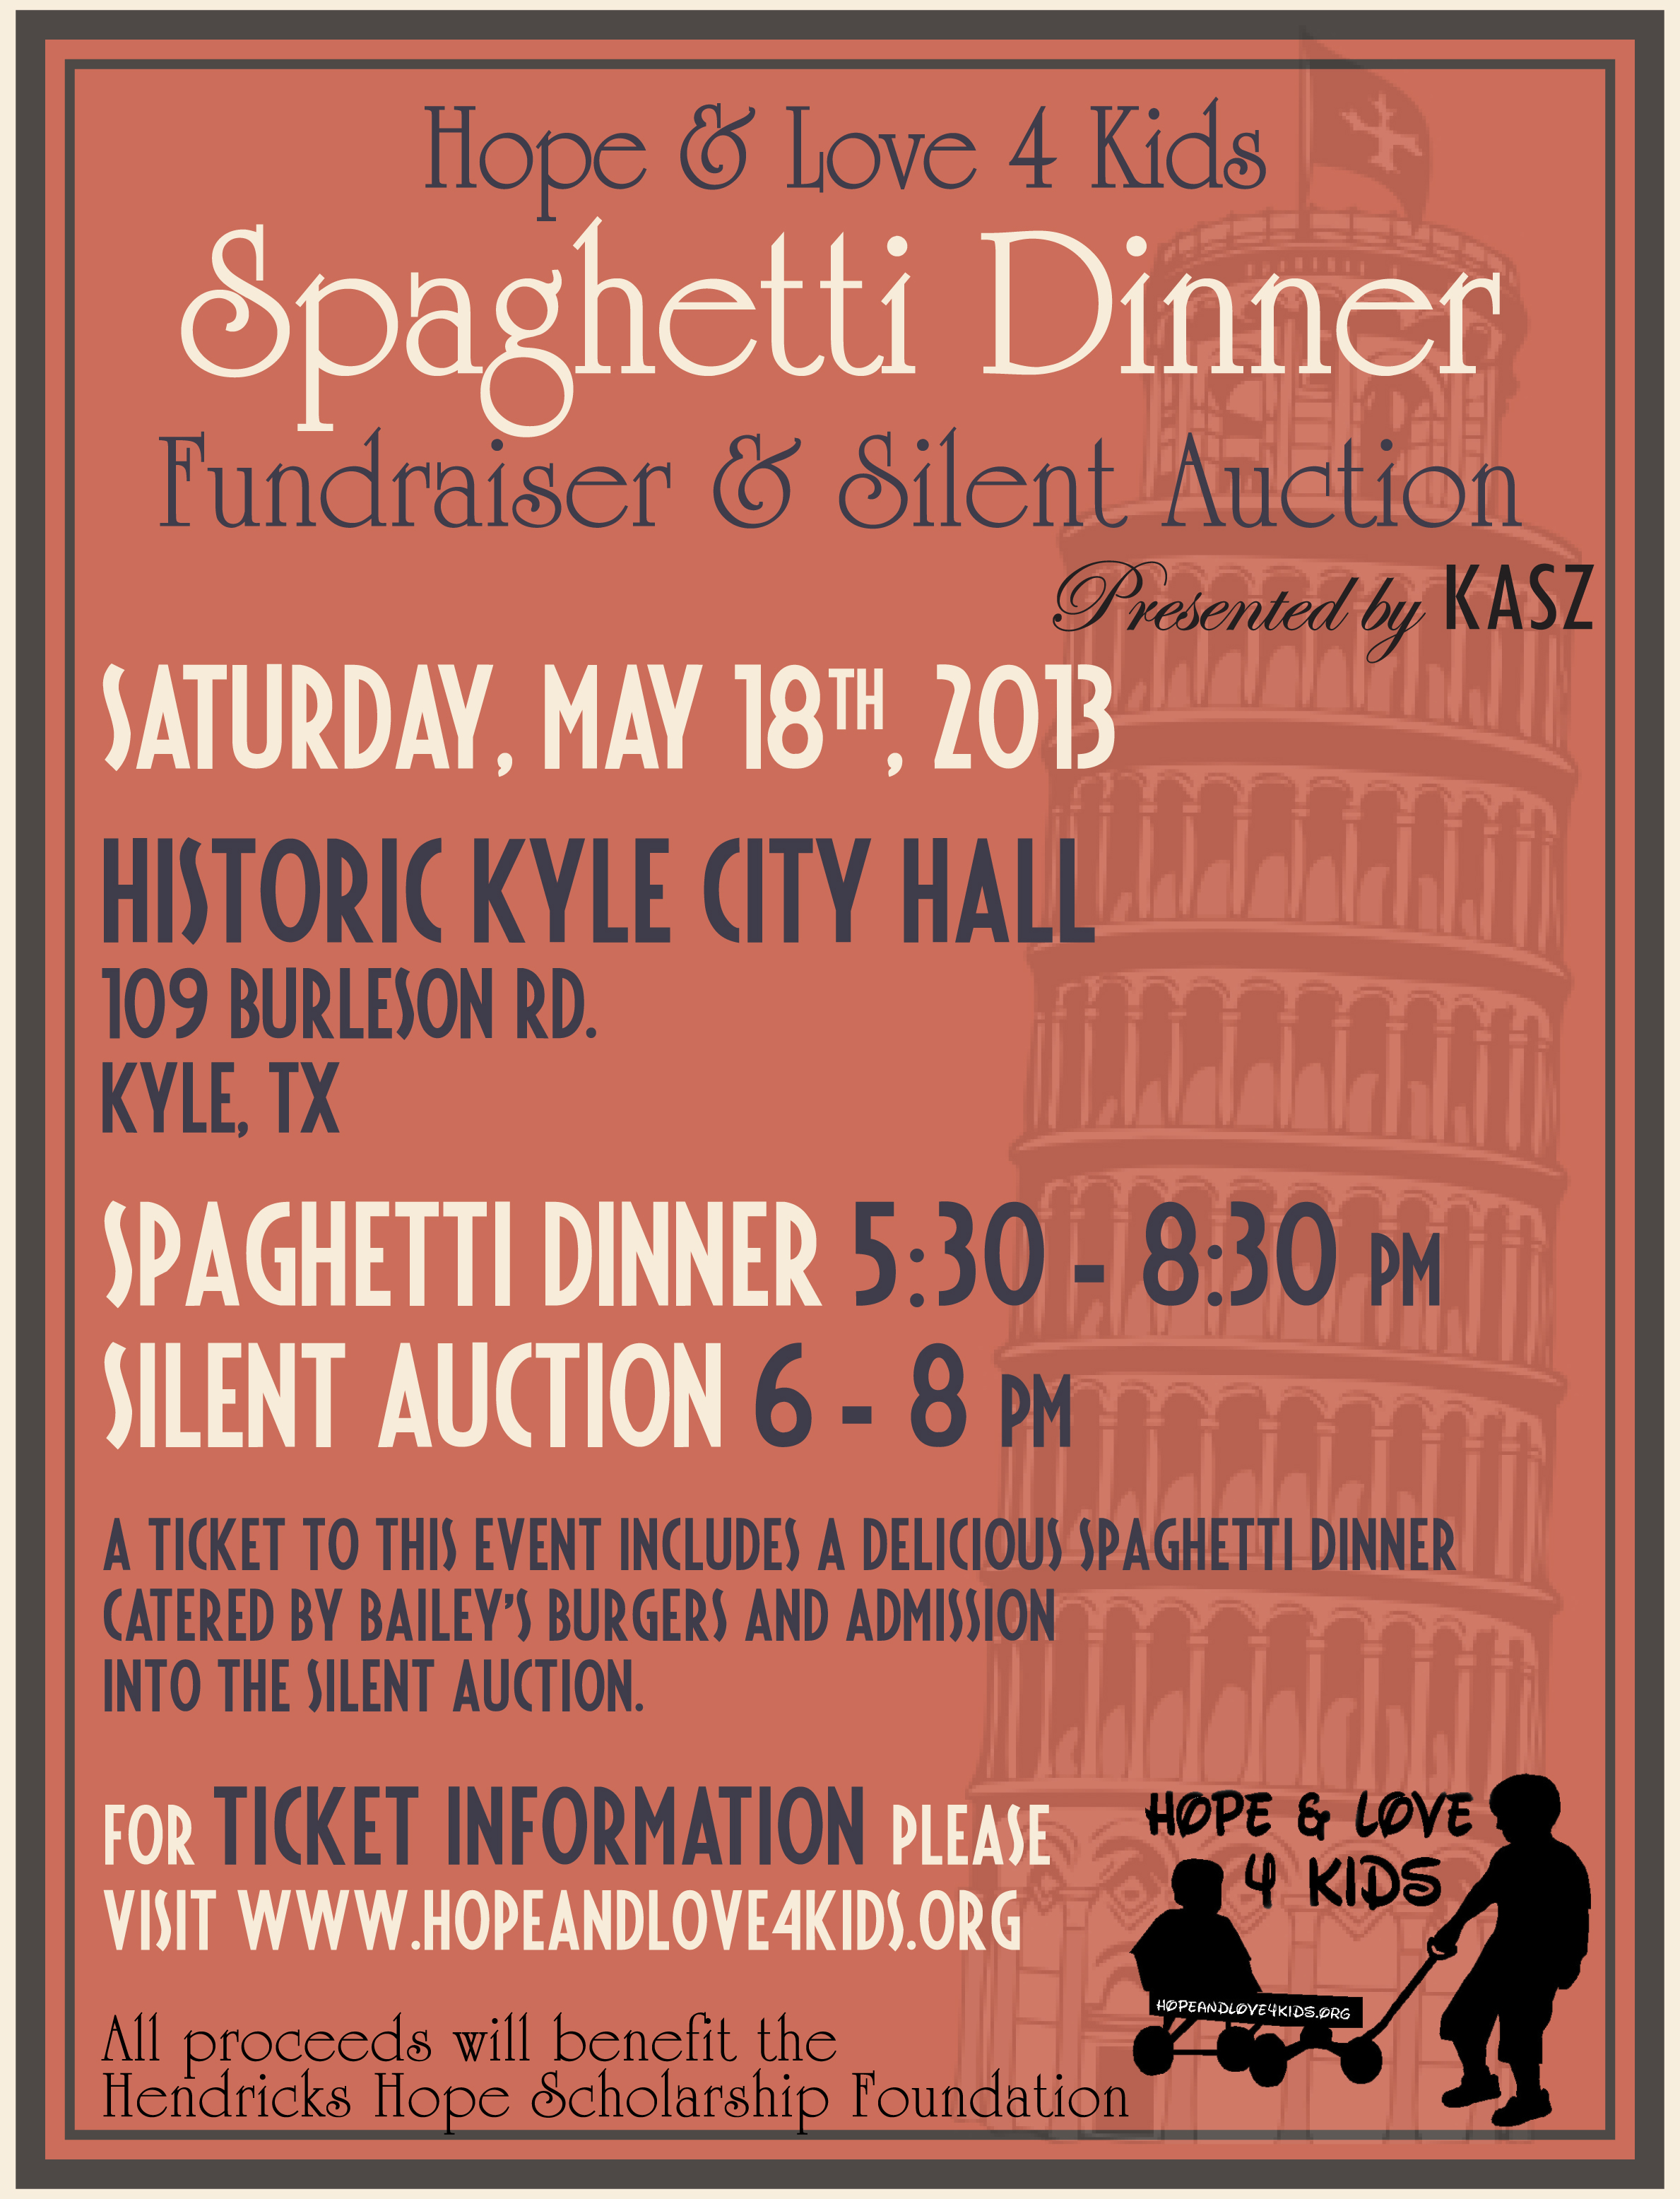 dinner fundraiser flyer templates related keywords suggestions spaghetti dinner fundraiser flyer template please help us sp the